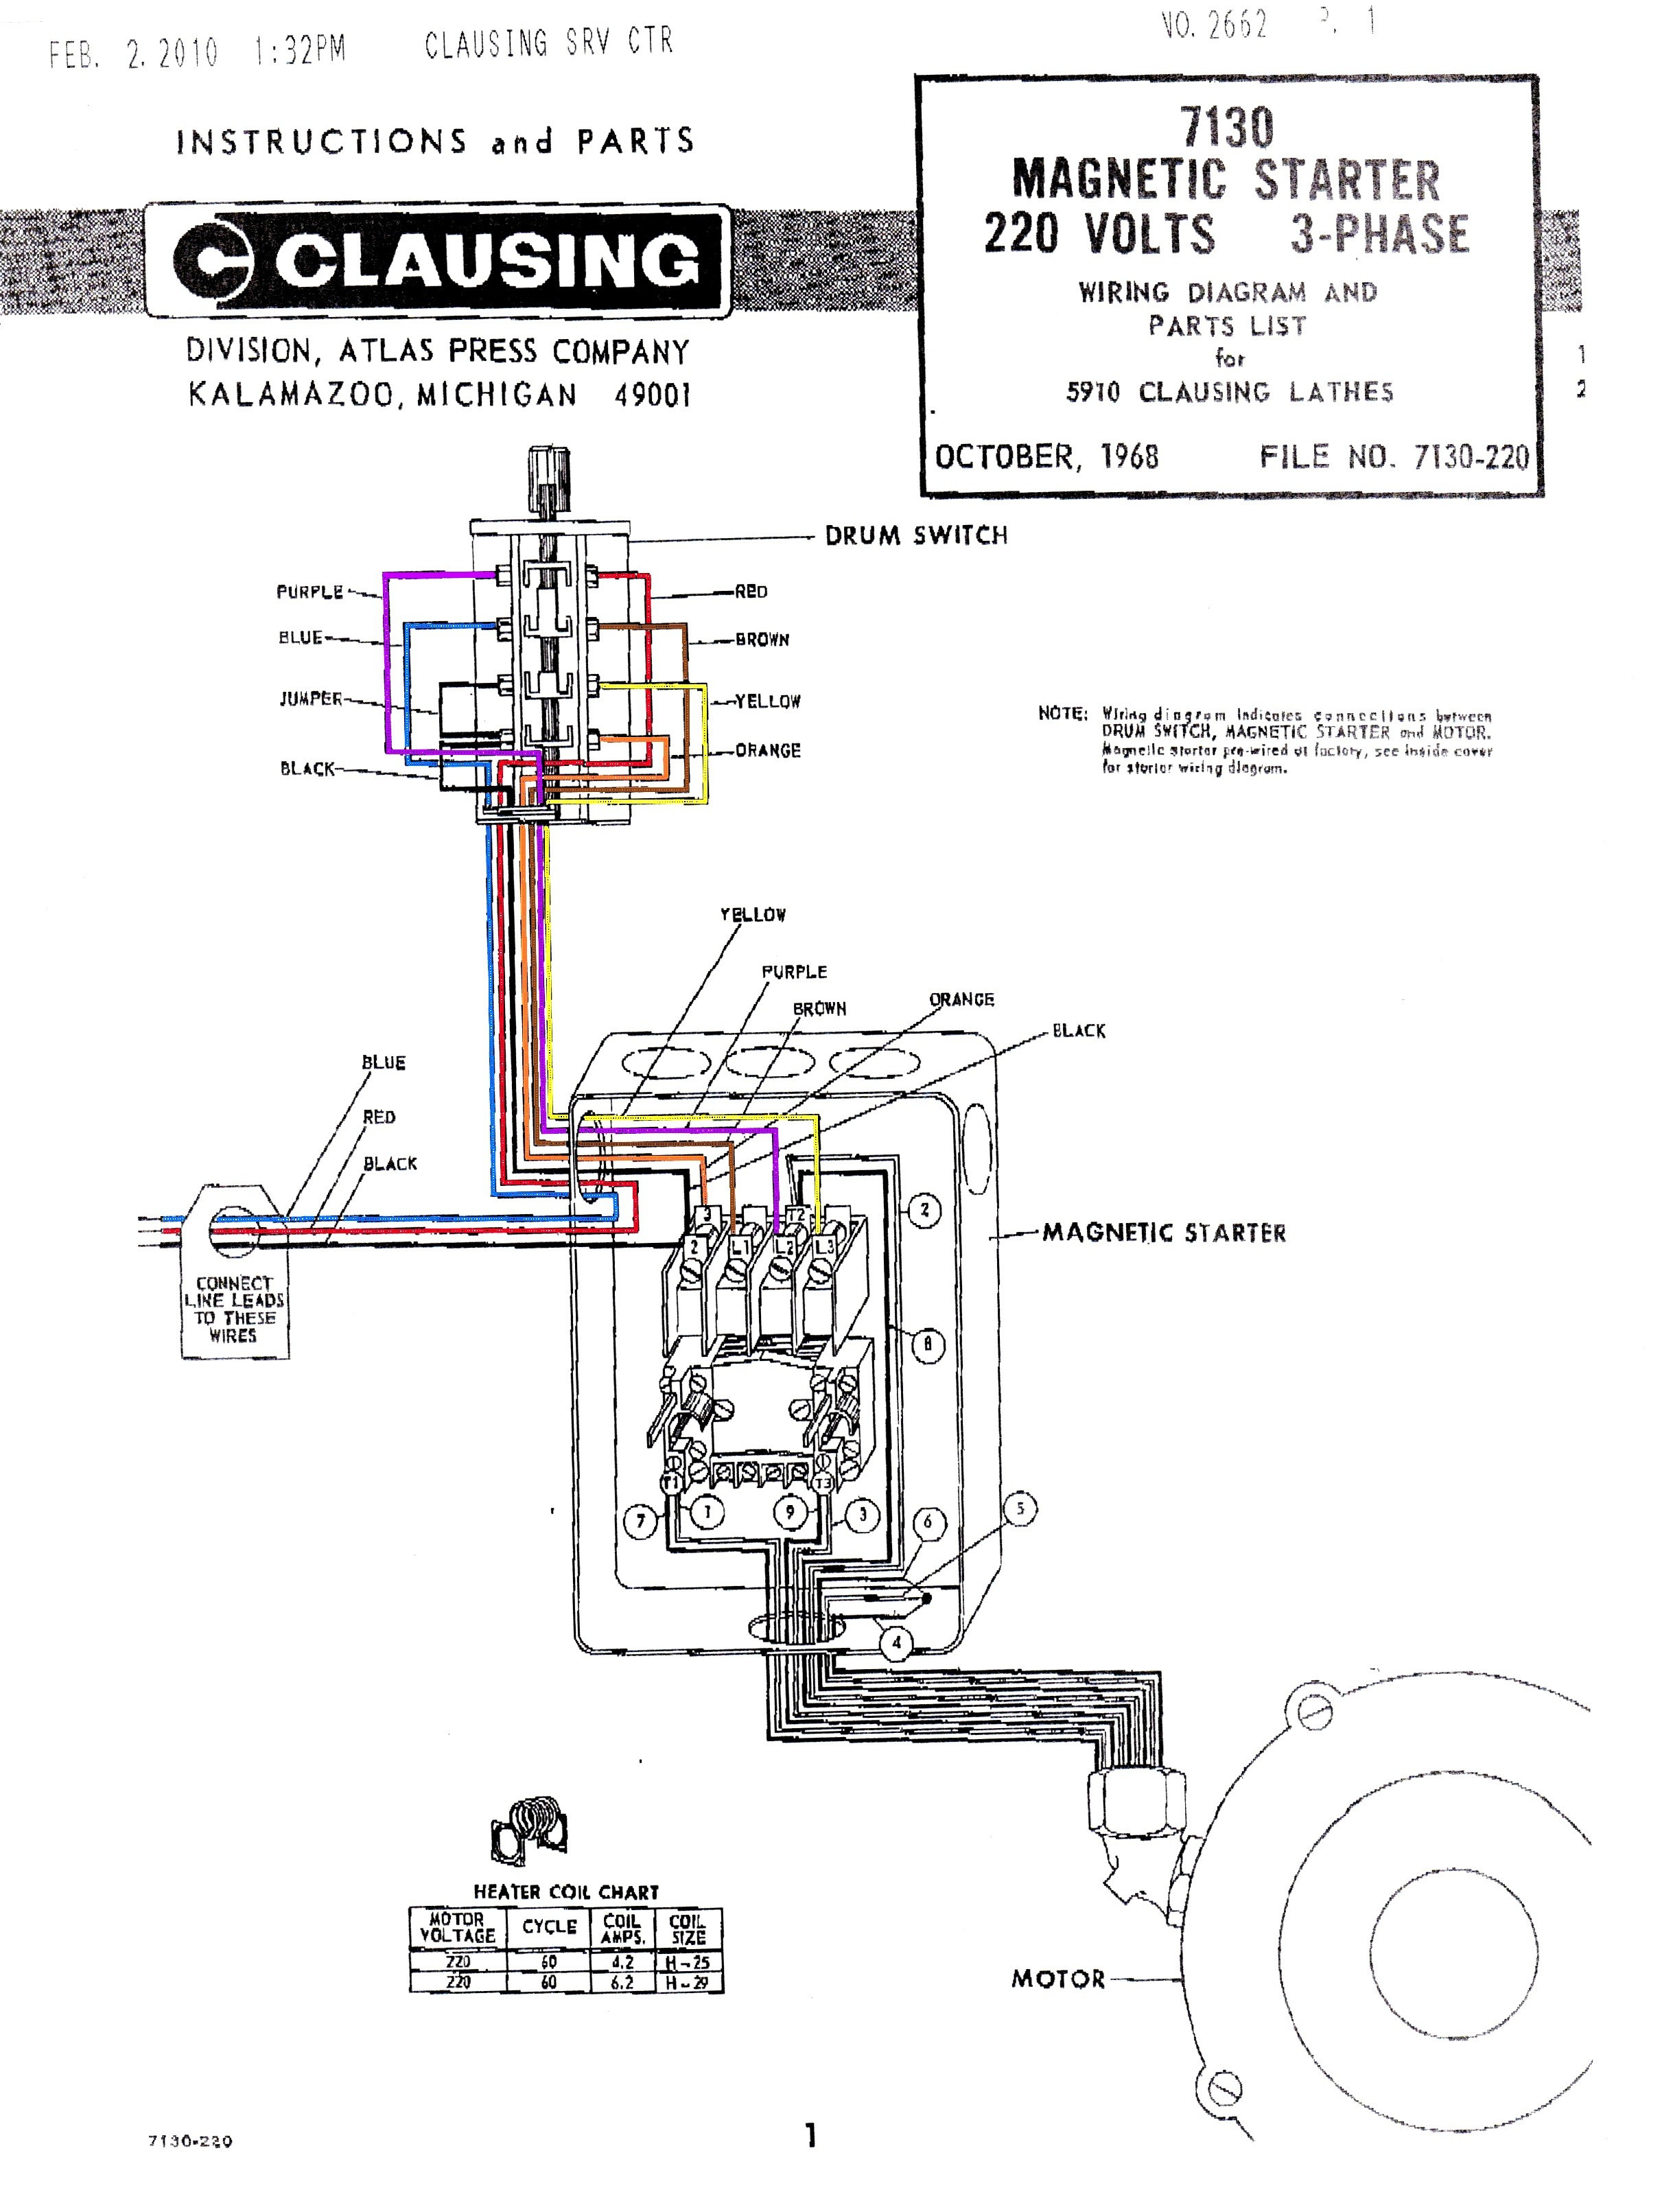 Marathon Electric Motor Wiring - Carbonvote.mudit.blog • on marathon electric pancake generator, electric motor diagram, disconnect electrical motor connection diagram, marathon motor parts, single-phase motor reversing diagram, 1990 454 efi electrical diagram, marathon generators wire diagram, marathon pool motor replacement, marathon parts diagram, ao smith motor parts diagram, marathon motor water pump, marathon motor serial number, marathon motor mounting diagram,